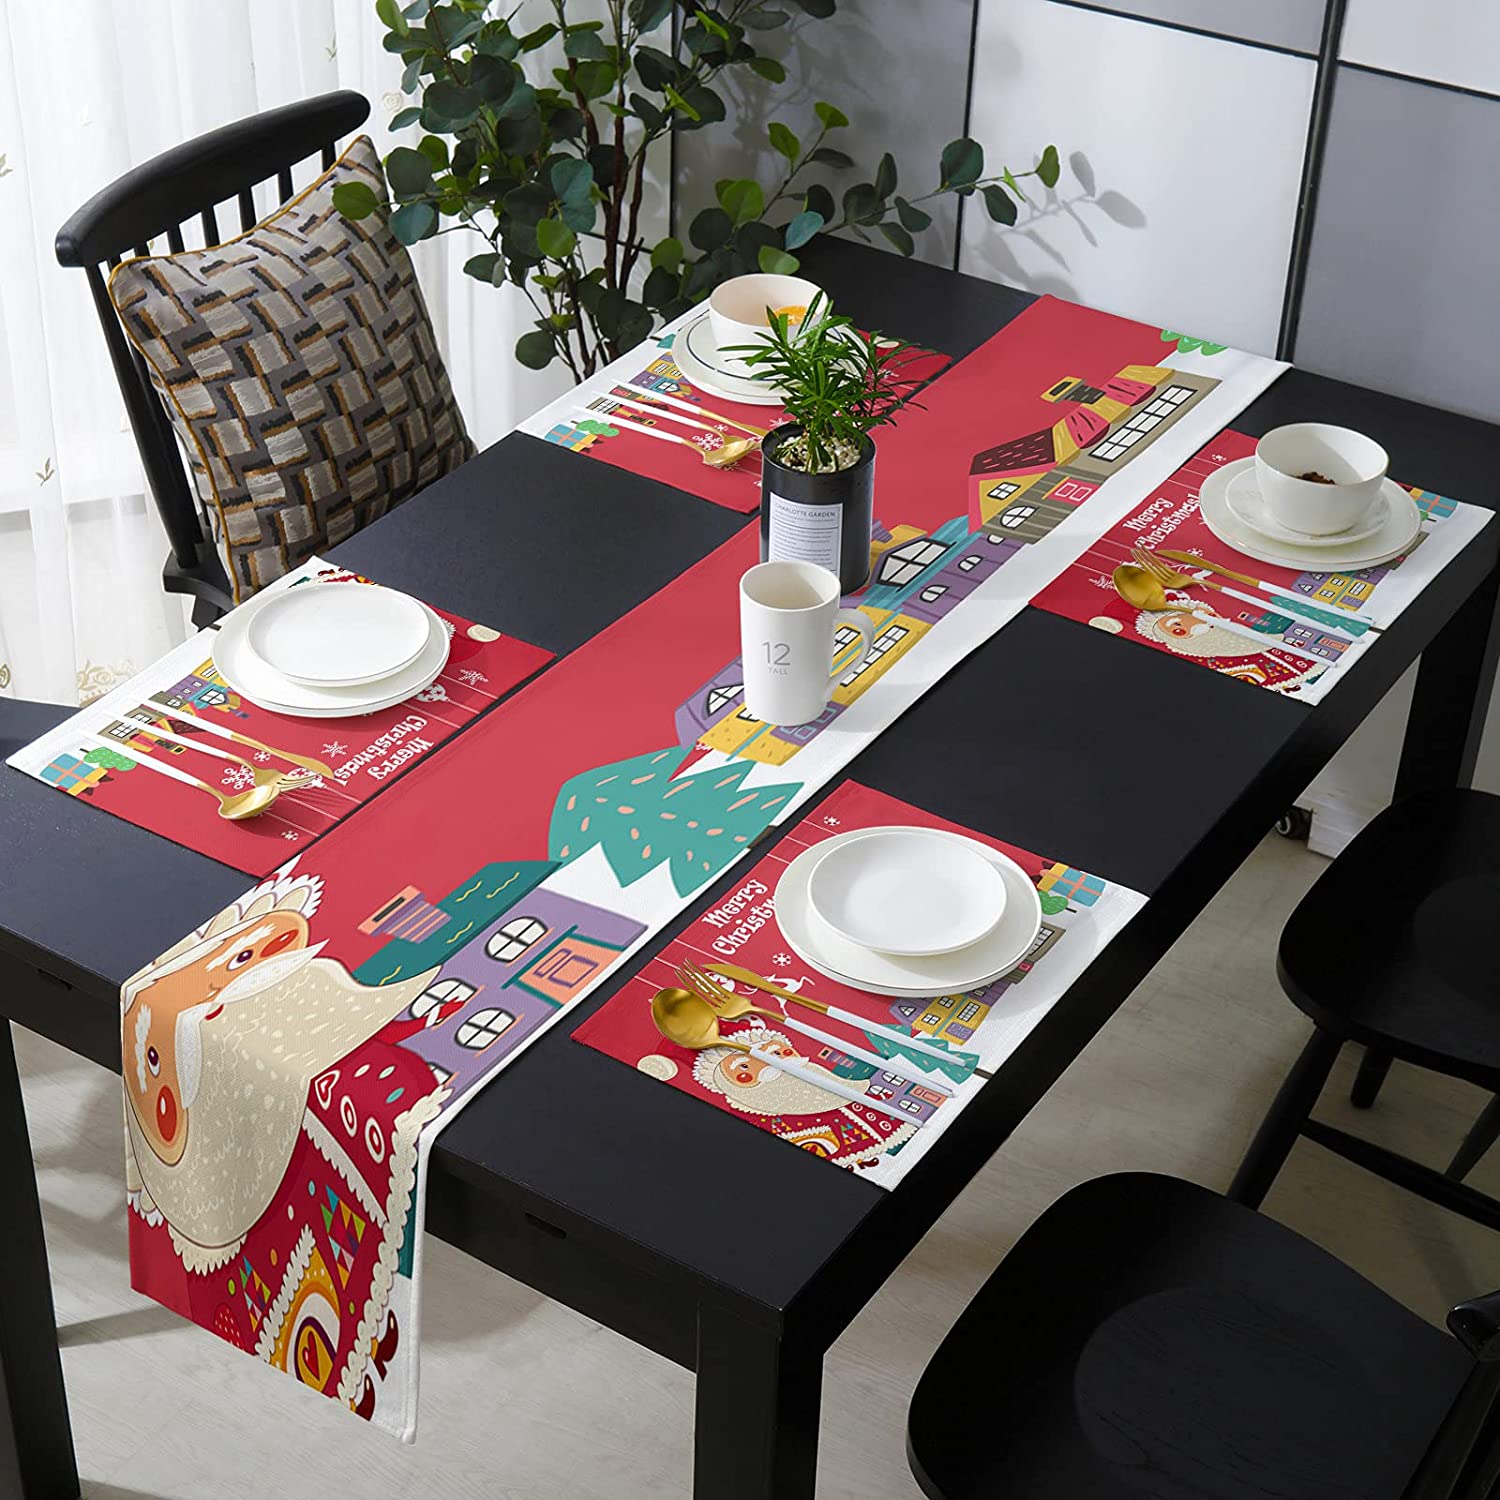 Placemats Set of 6 Award-winning store with Table Runner Kitchen L Dining Recommendation for